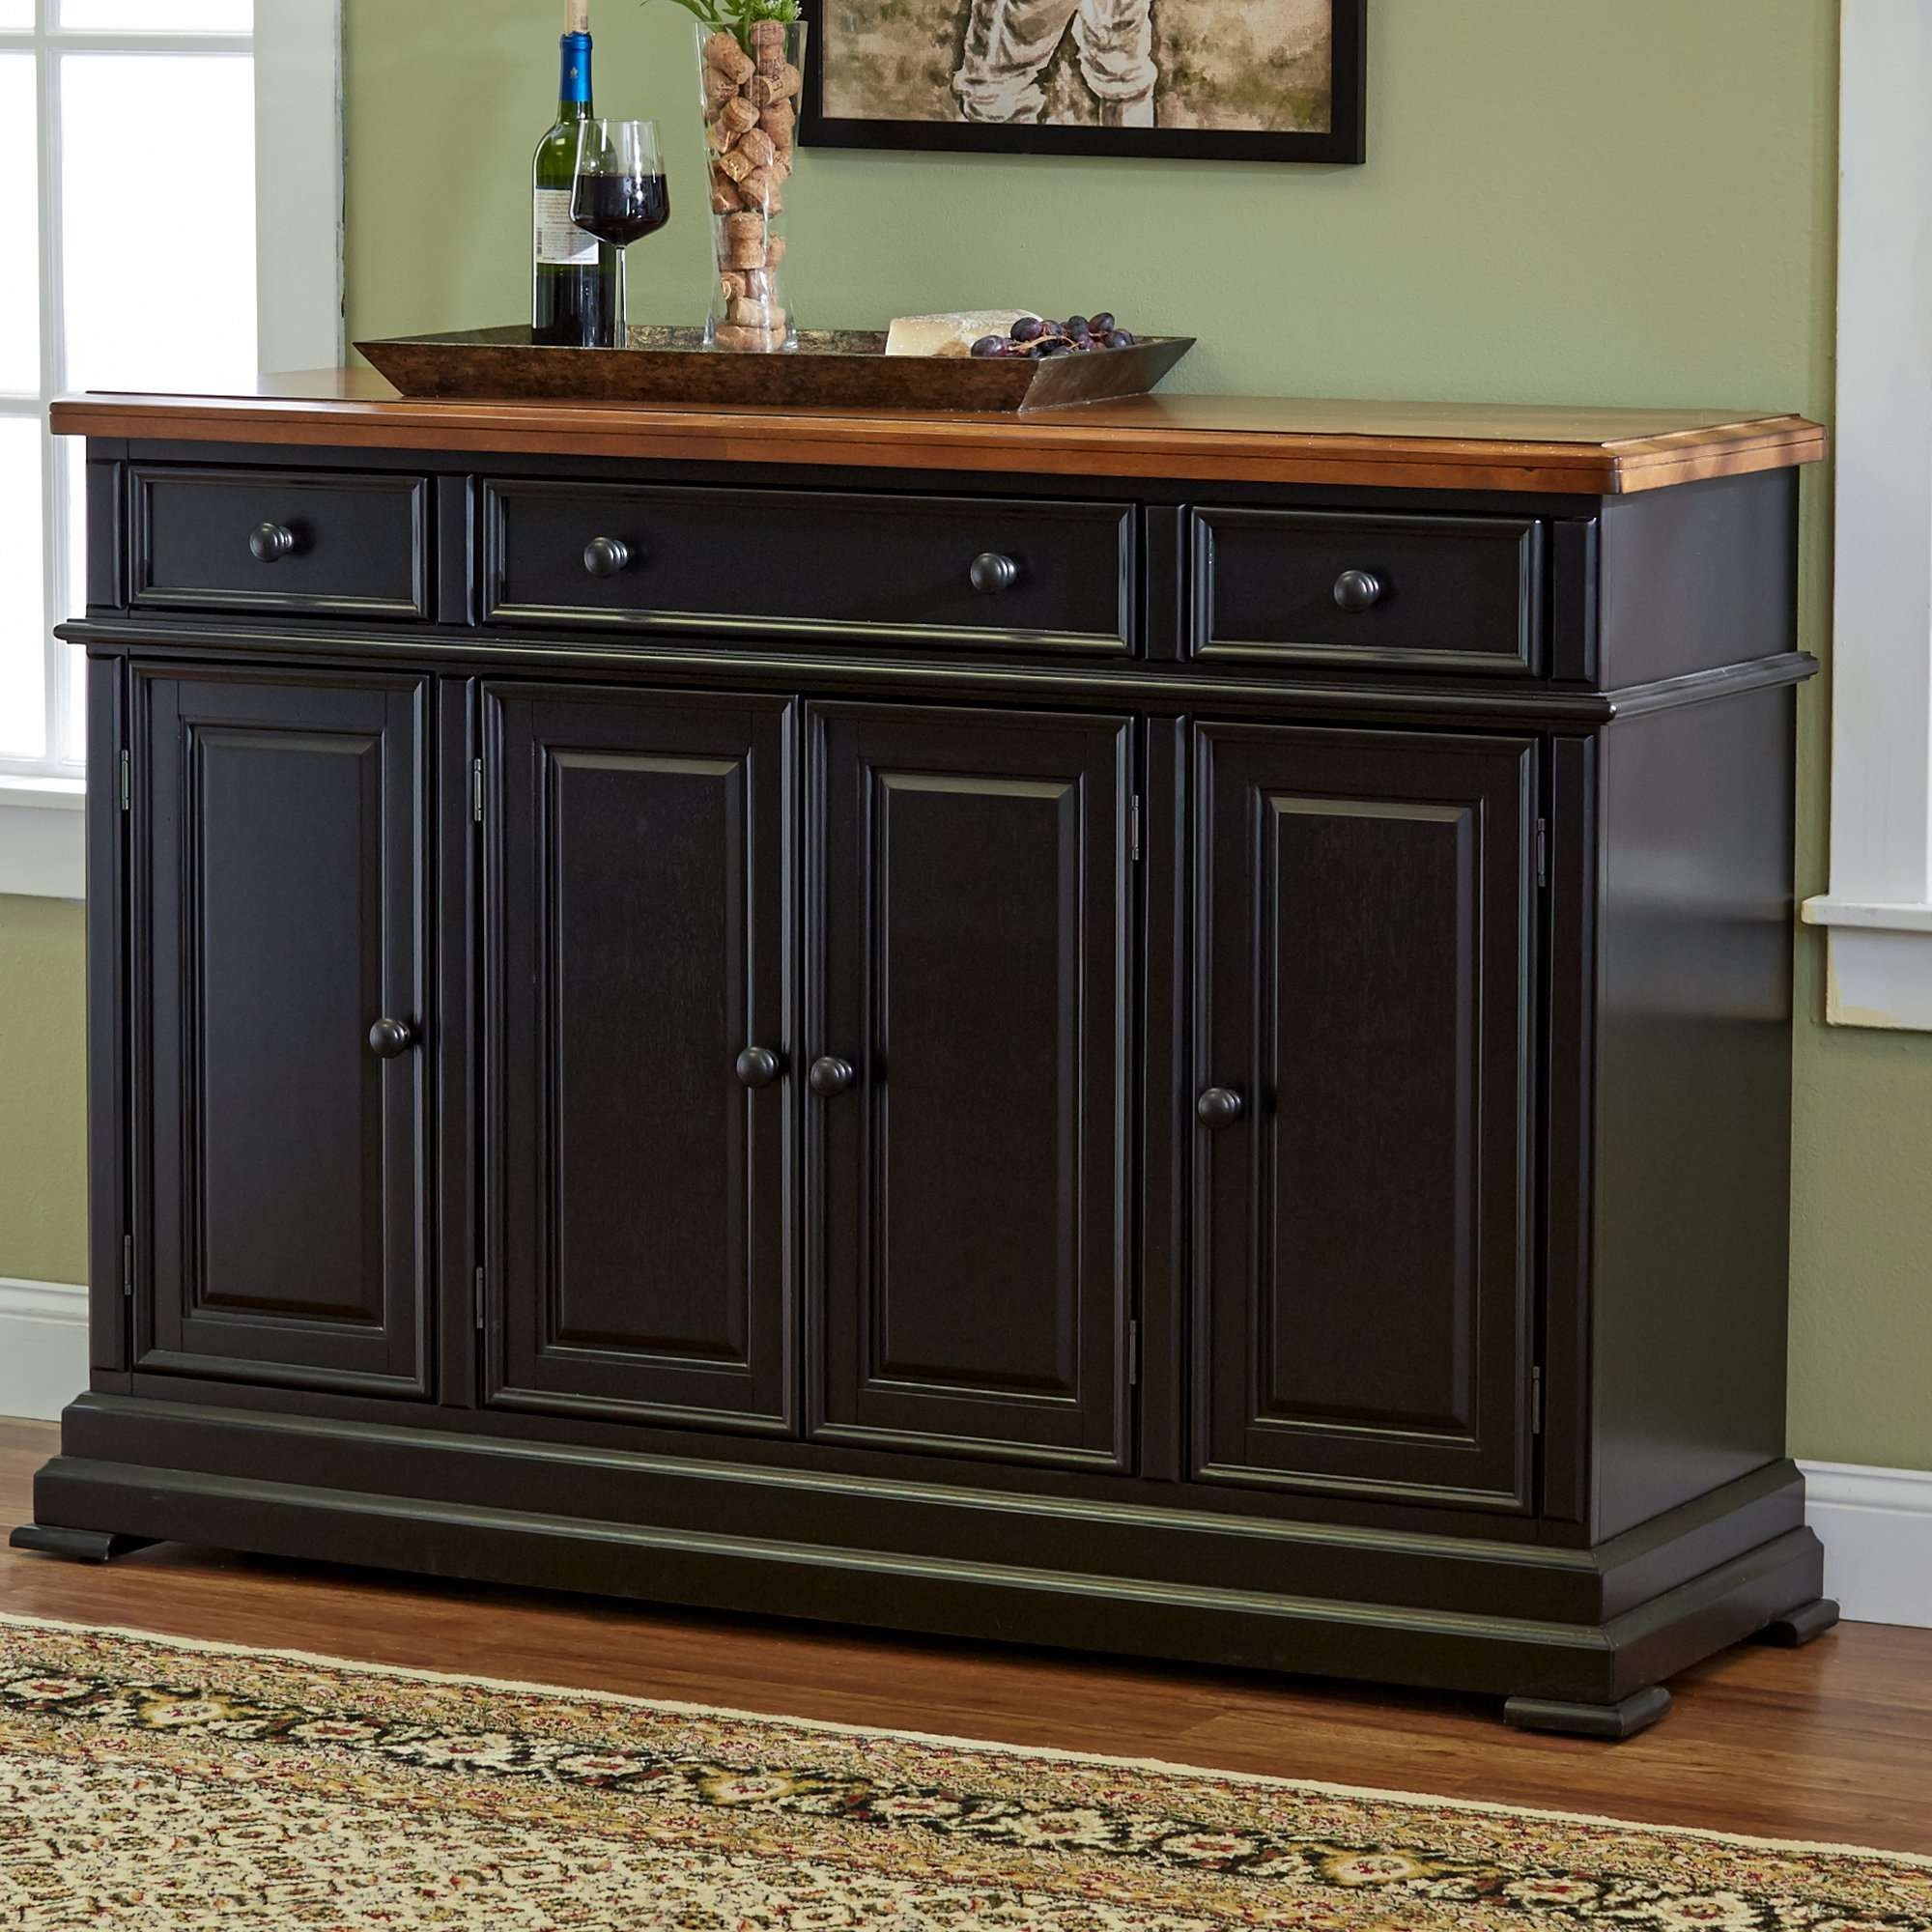 Elegant Sideboard With Hutch – Bjdgjy Throughout Elegant Sideboards (View 3 of 20)